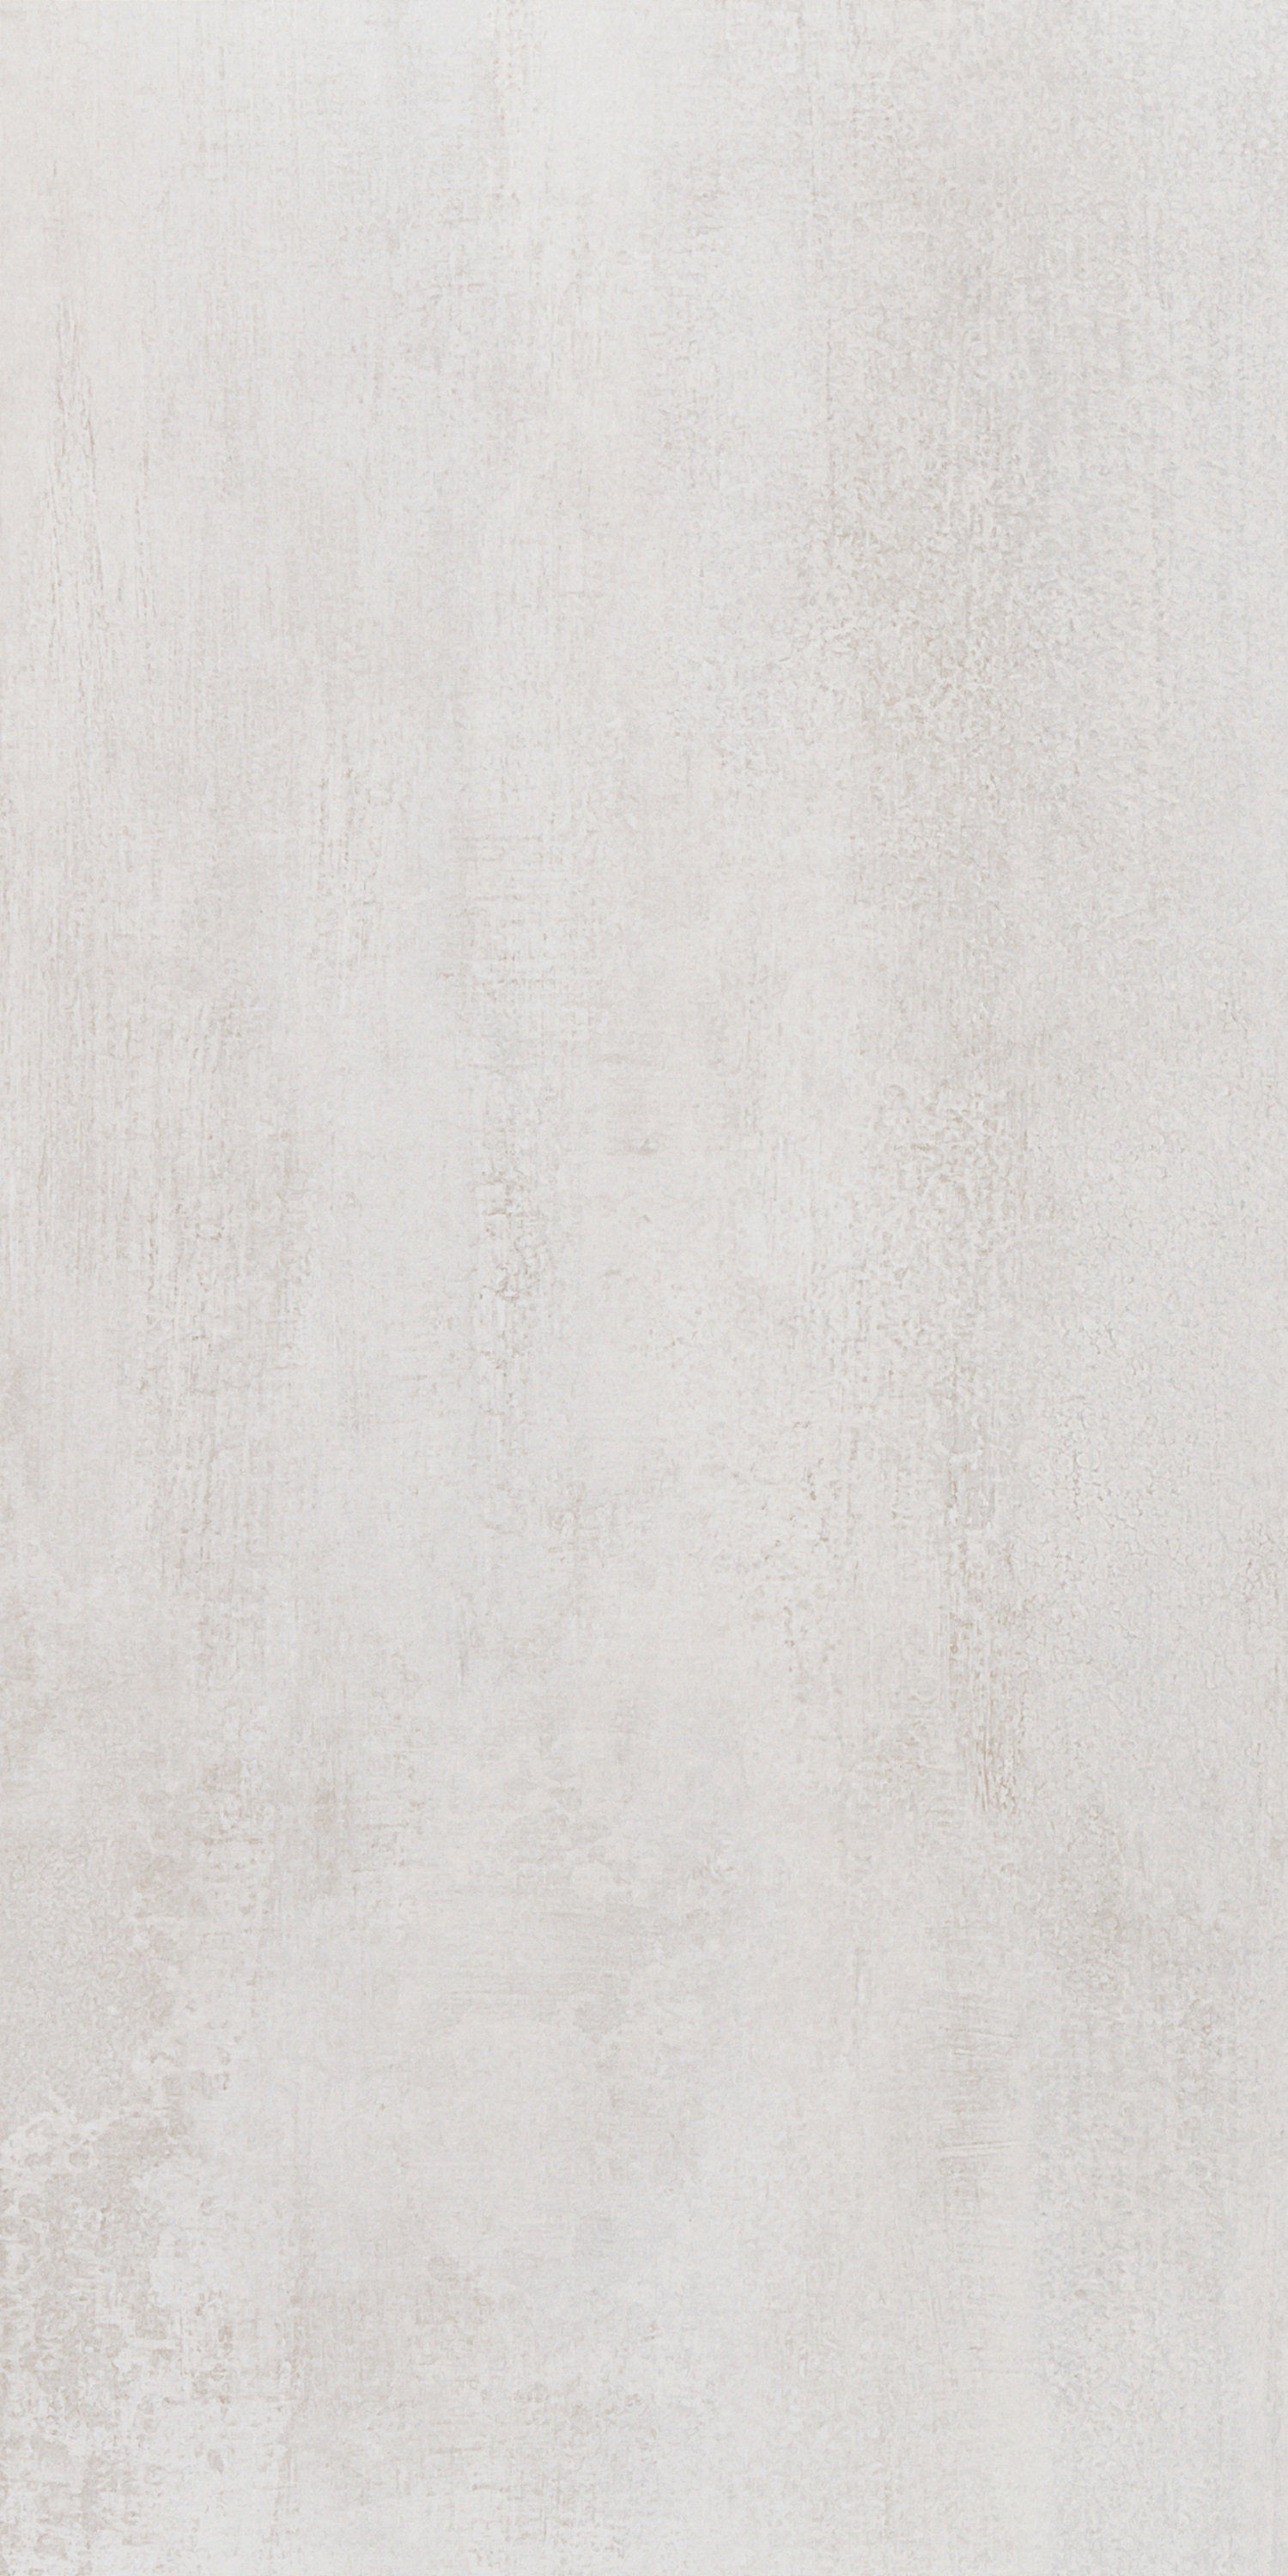 Contempo White 15 X 30 RECTIFIED EDGE